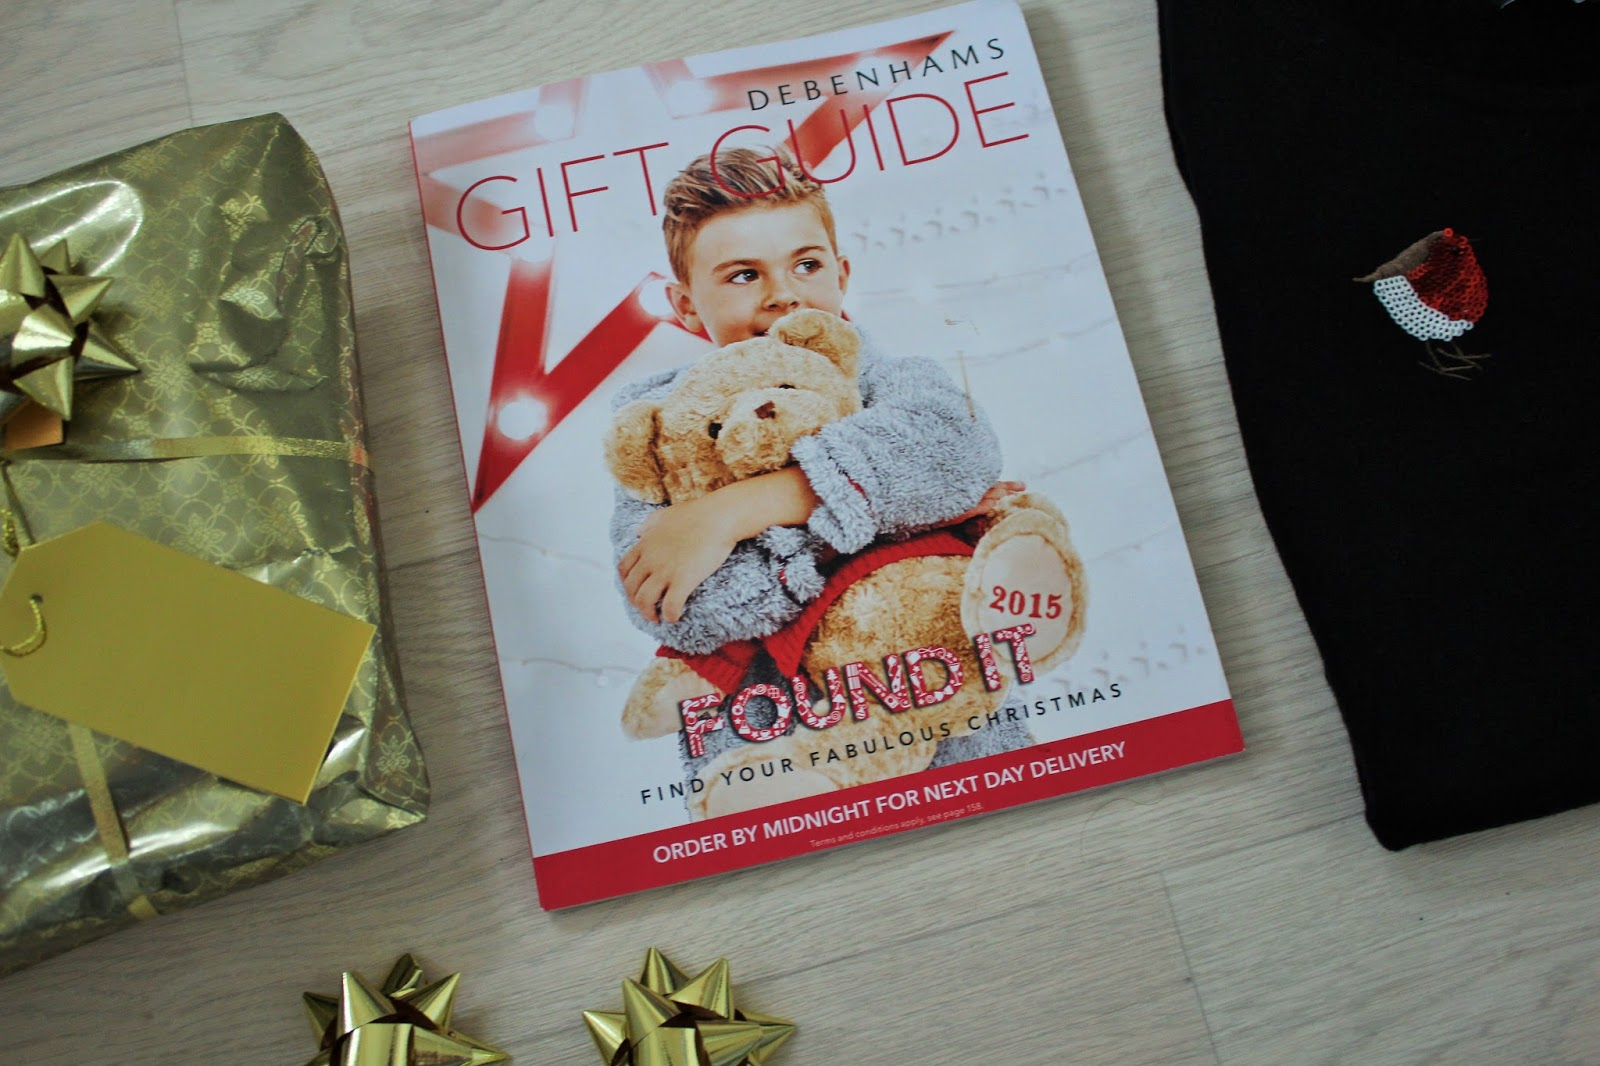 Debenhams Christmas Gift Guide 2015